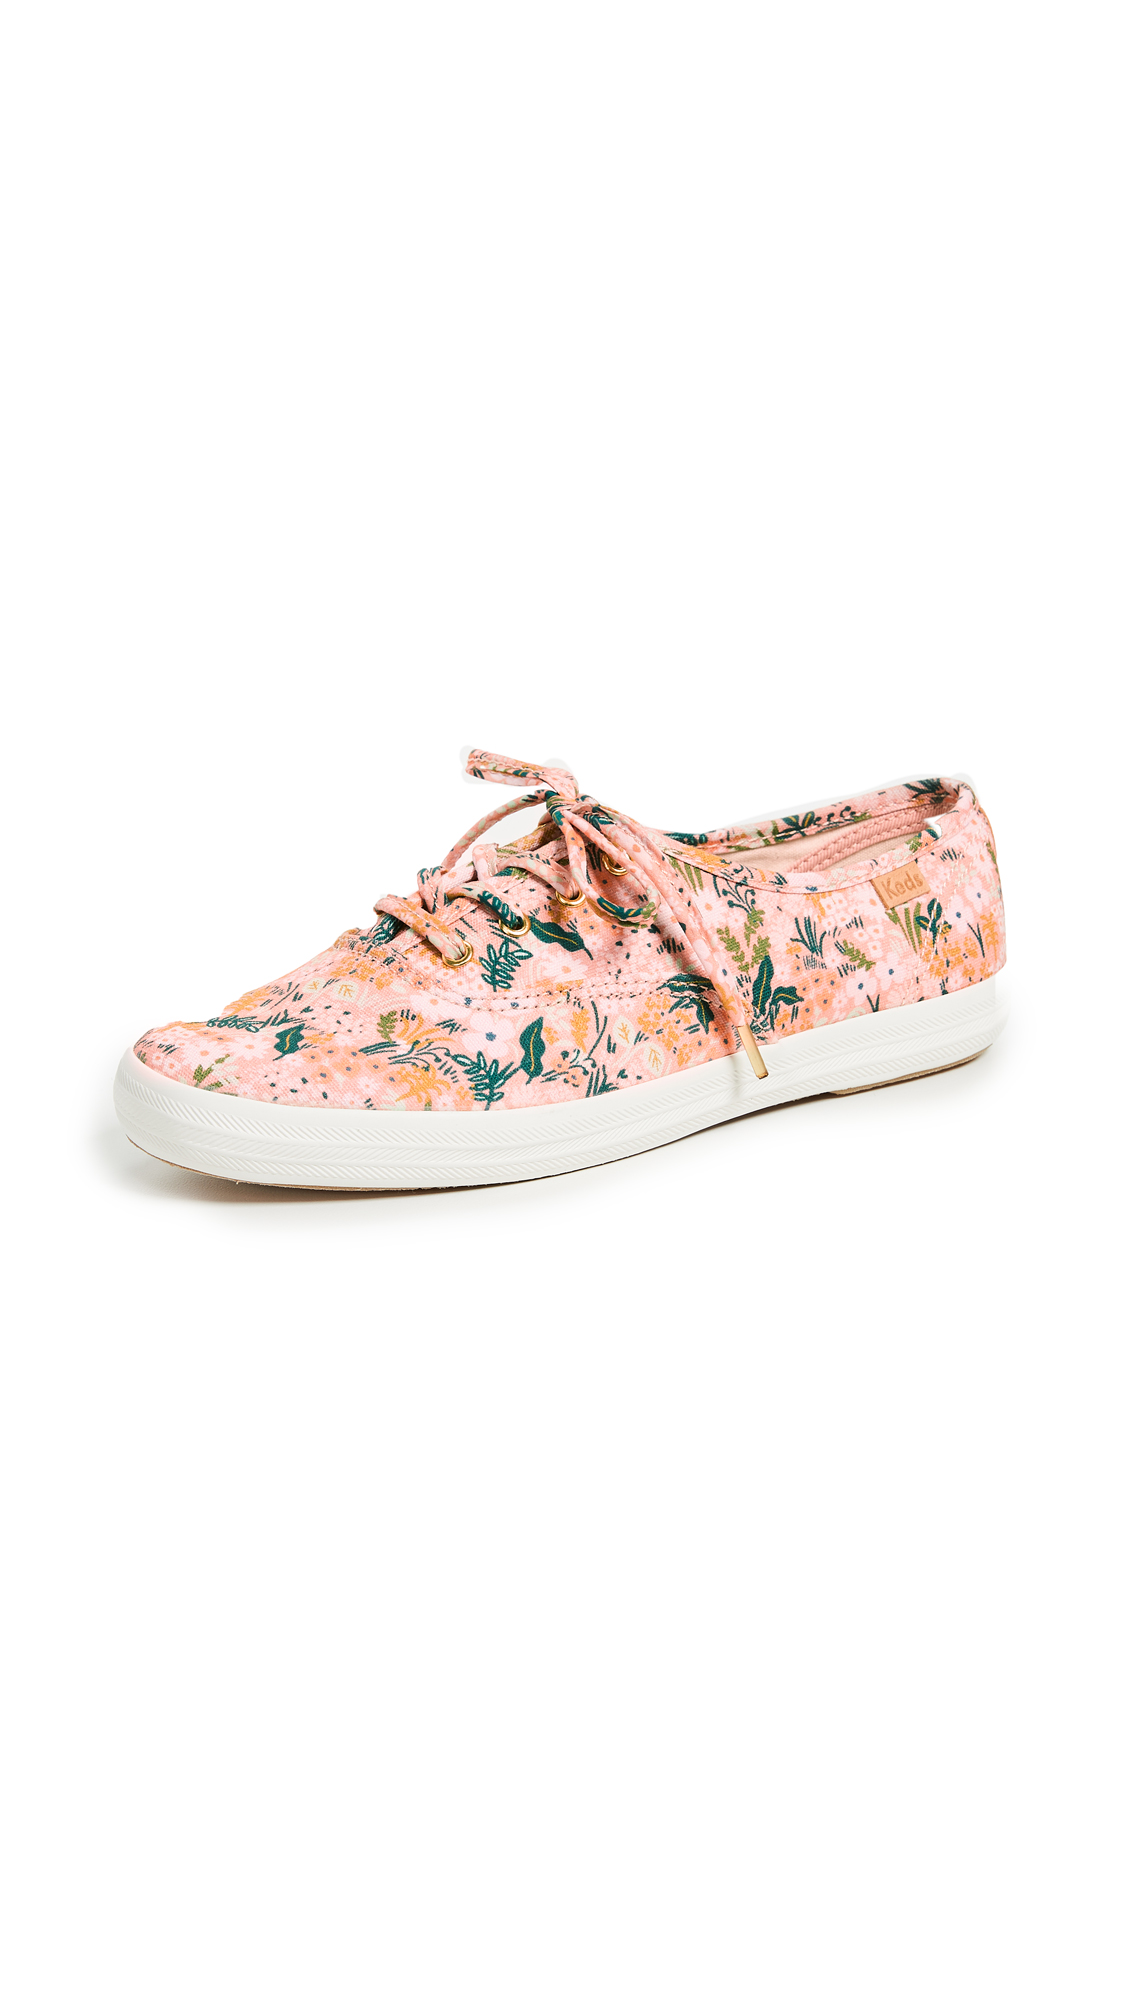 Keds x Rifle Paper CO CH Sneakers - Pink